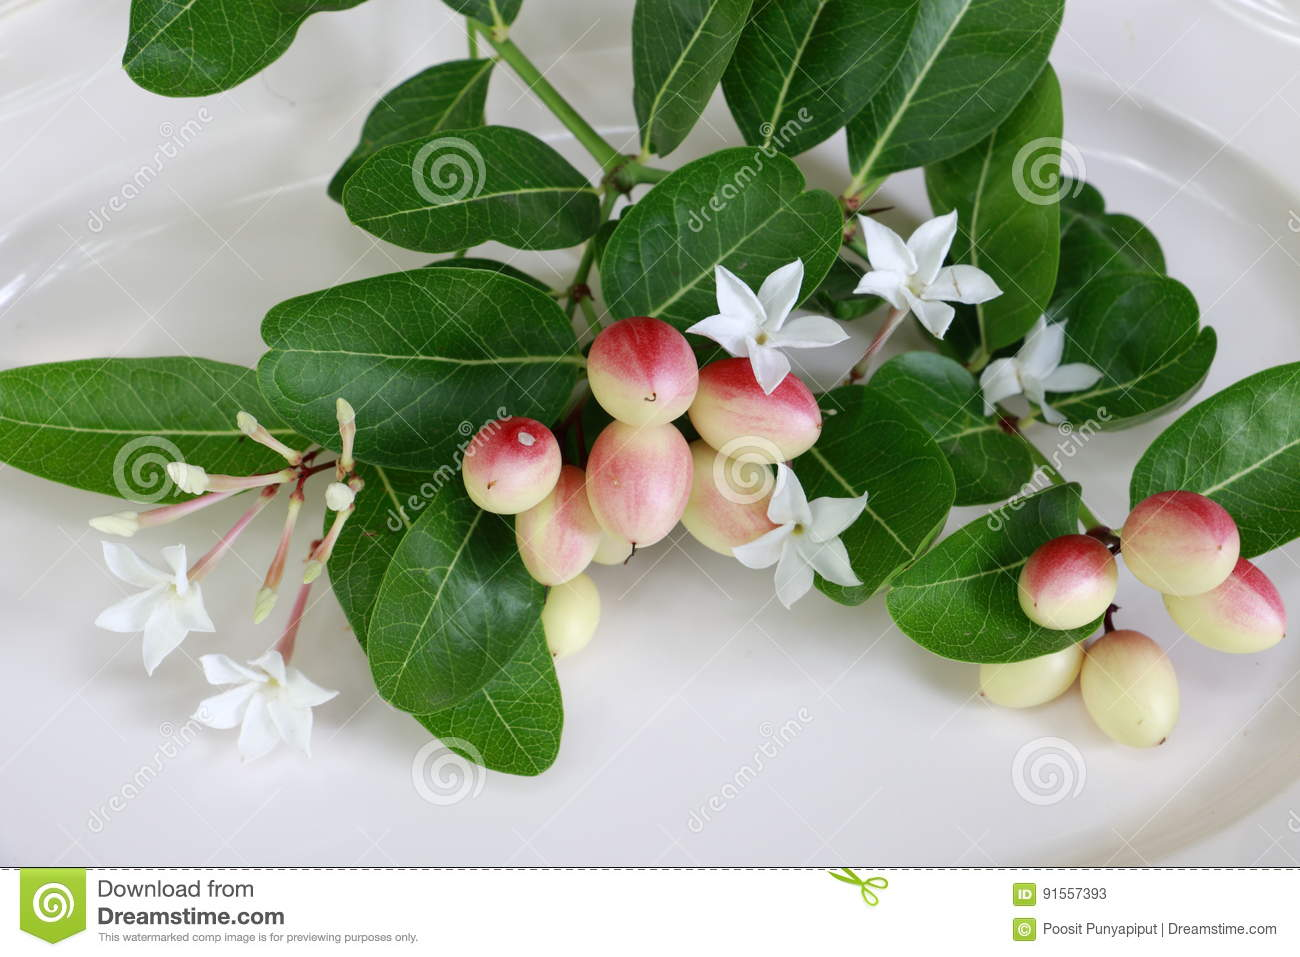 Carissa carandas L Flowers and leaves of mango, yew, lime, boiled on a palatable white dish.